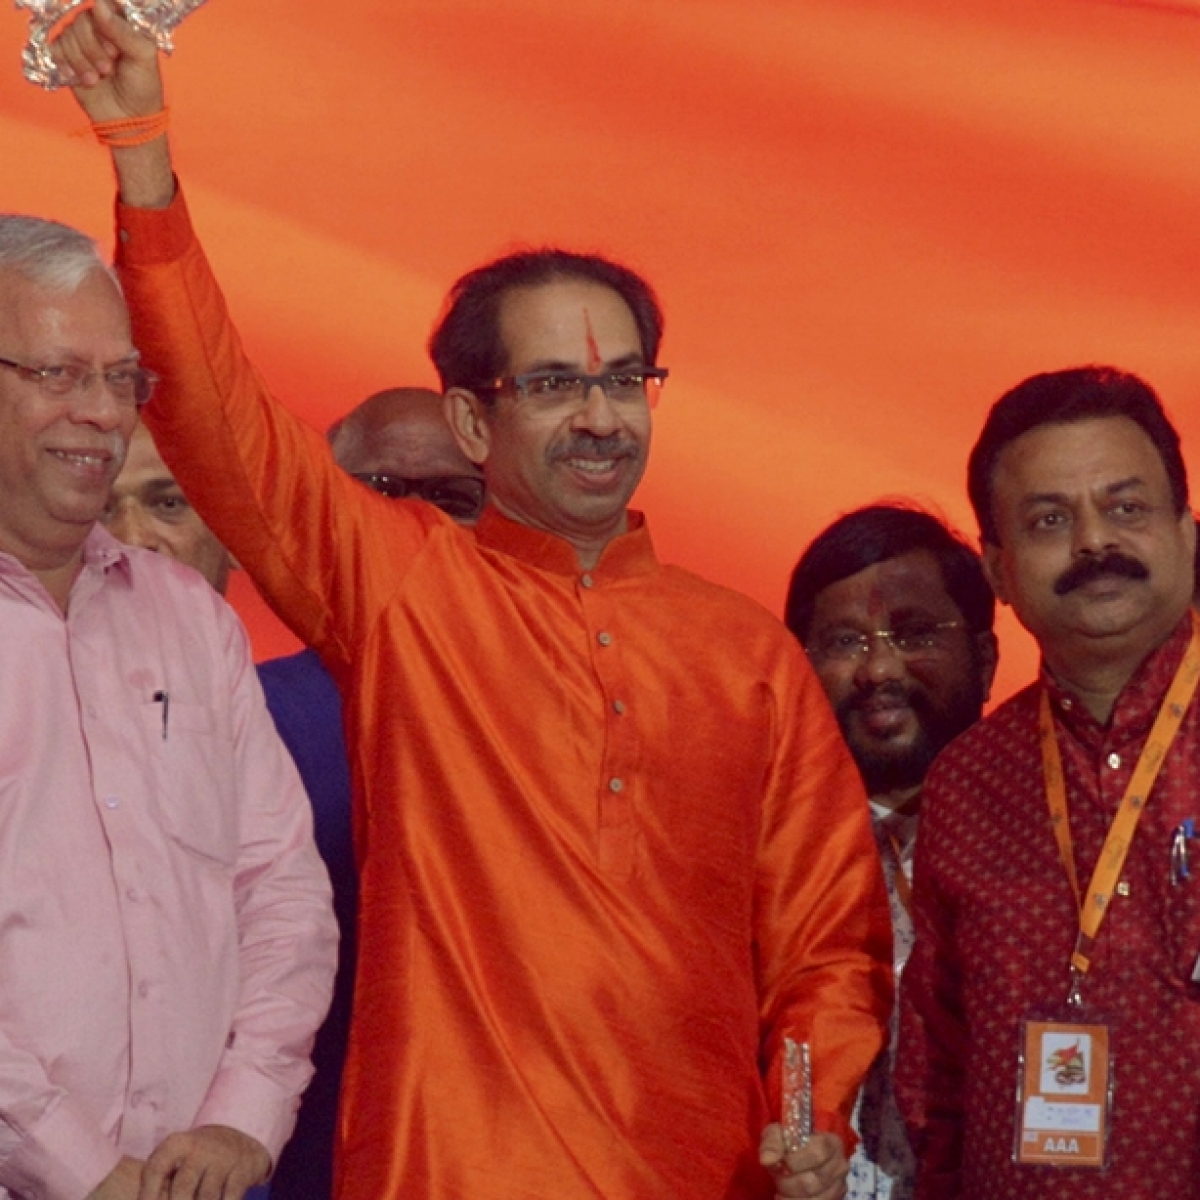 Uddhav Thackeray's message to MNS, BJP, Shiv Sena is not inclined to vacate Hindutva space